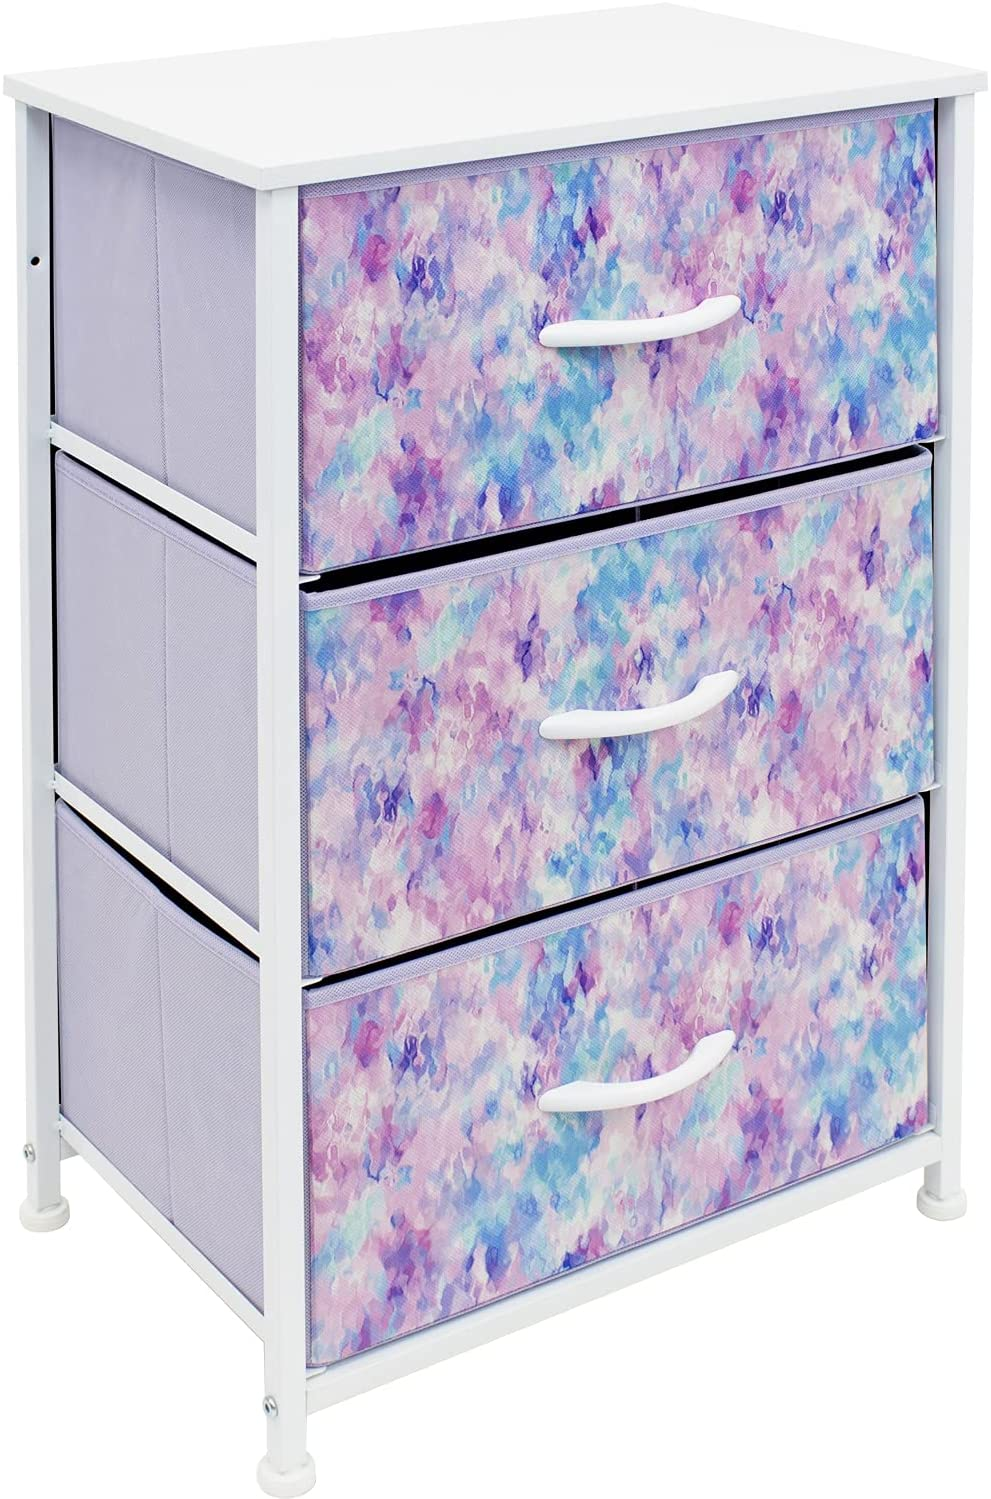 Sorbus Nightstand Storage Organizer Chest with 3 Drawers - Kids Girls, Boys Bedroom Furniture Chest for Clothes, Closet Organization - Steel Frame, Wood Top, Fabric Bin (3-Drawer, Blue/Pink/Purple)